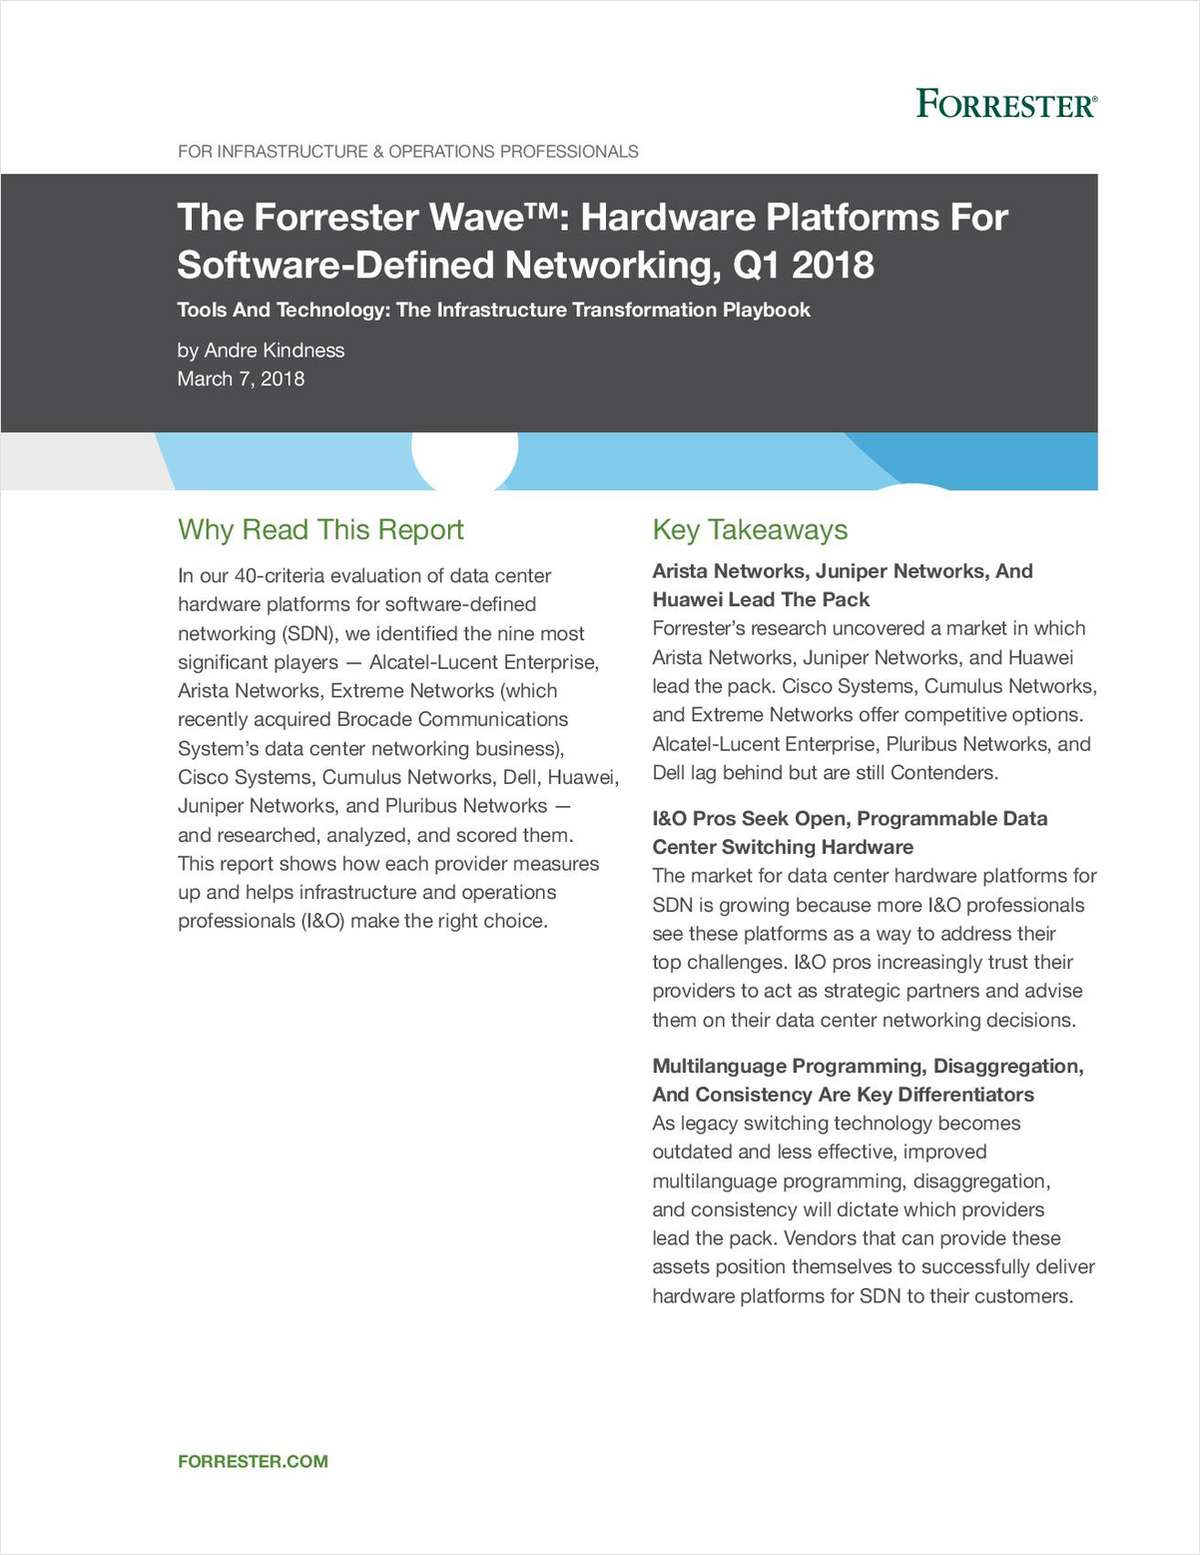 The 2018 Forrester Wave™ Report on Hardware Platforms for Software-Defined Networking (SDN)